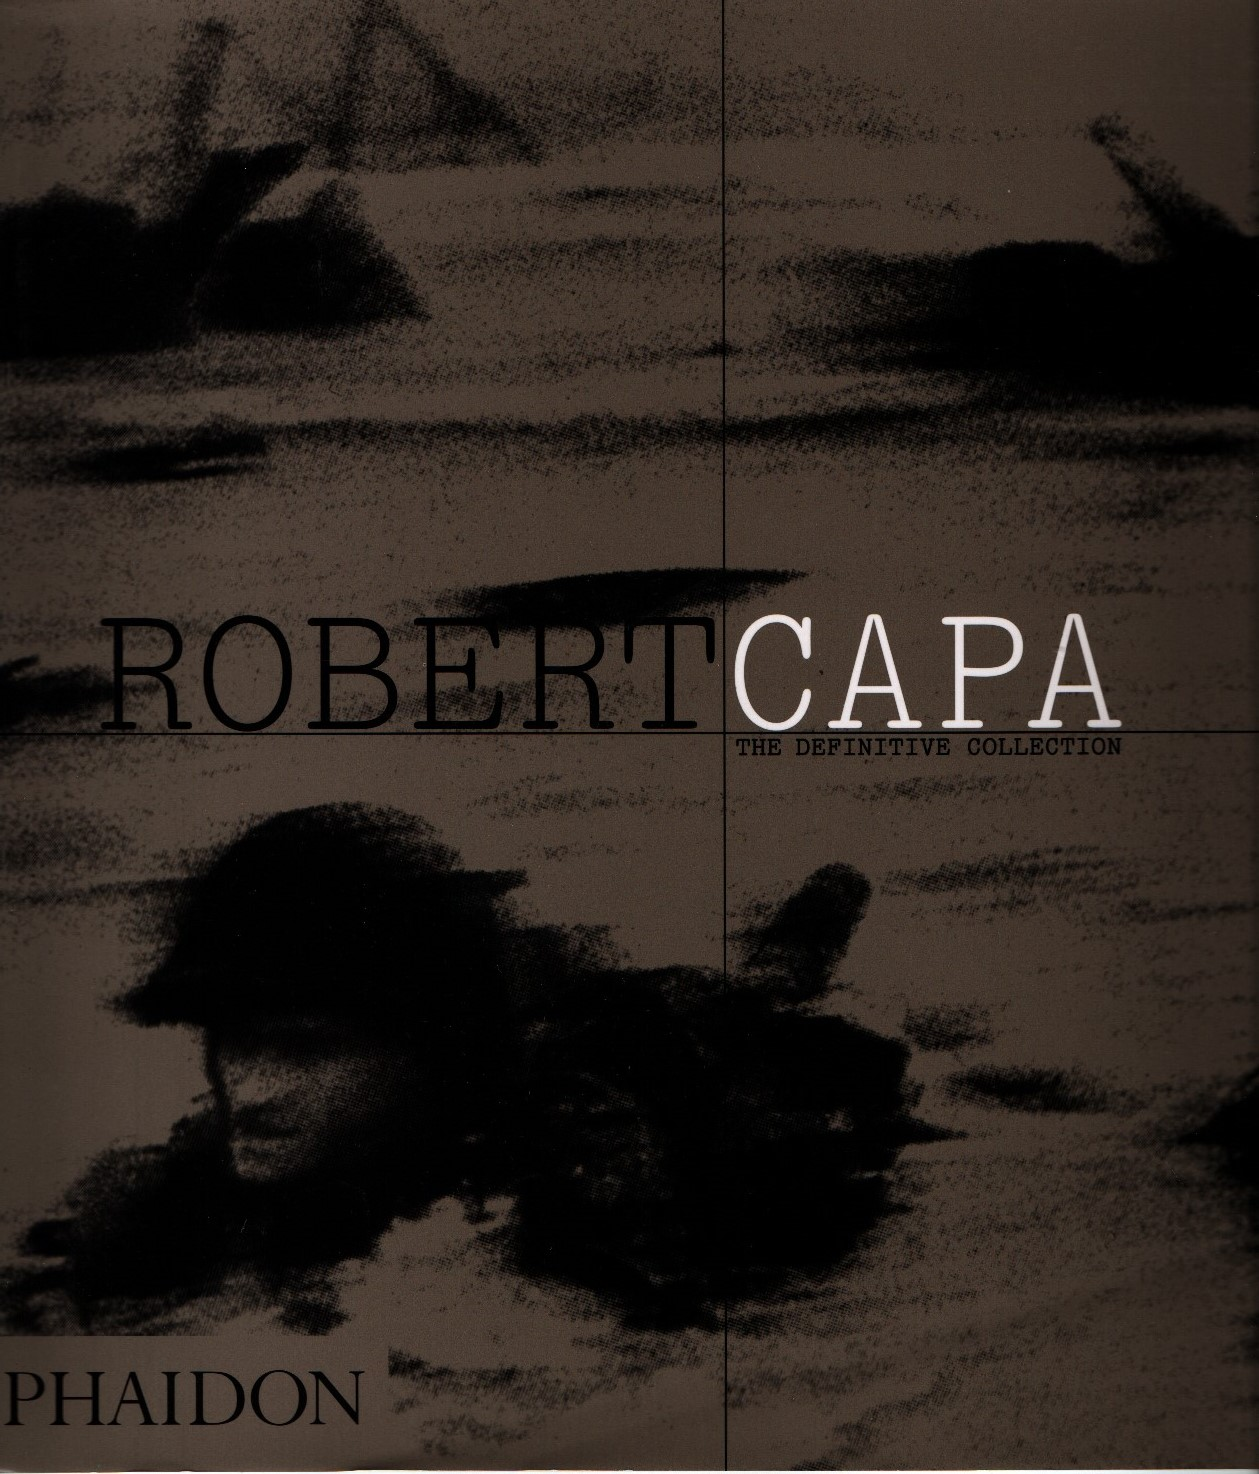 Robert Capa: The Definitive Collection